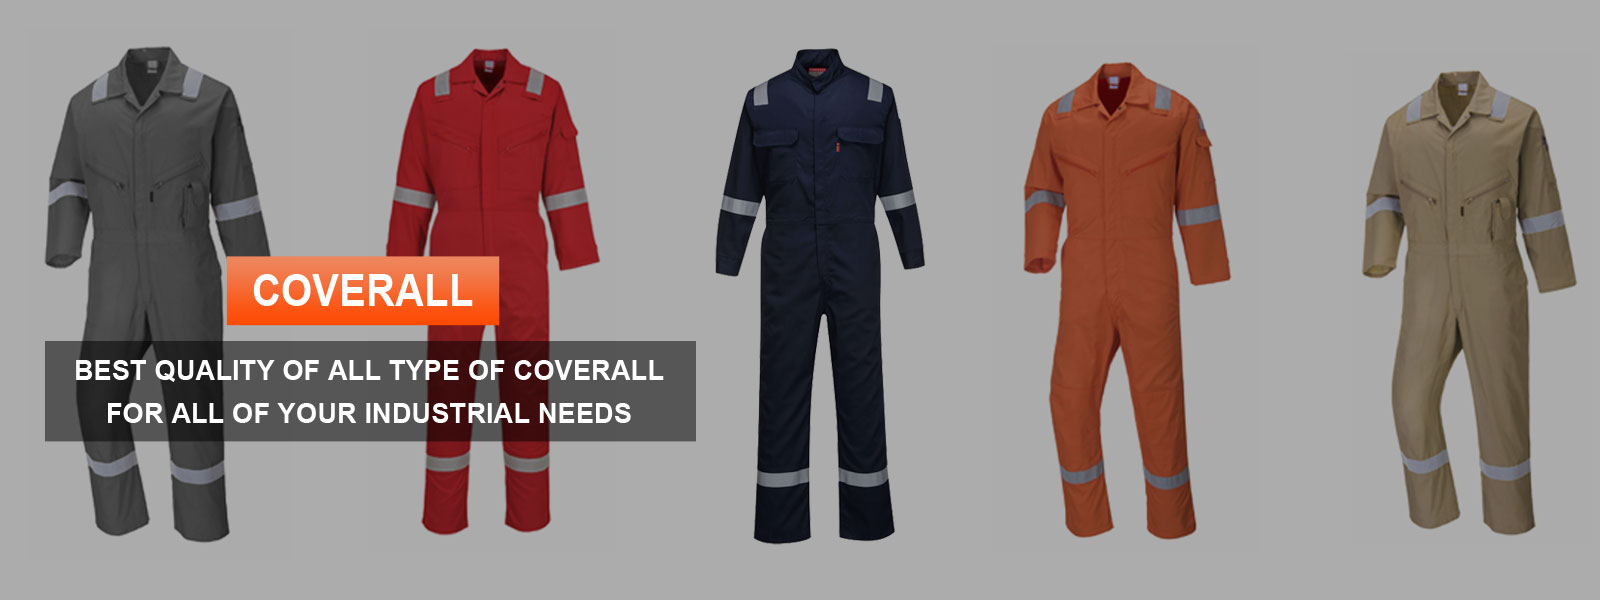 Coverall Manufacturers in Argentina